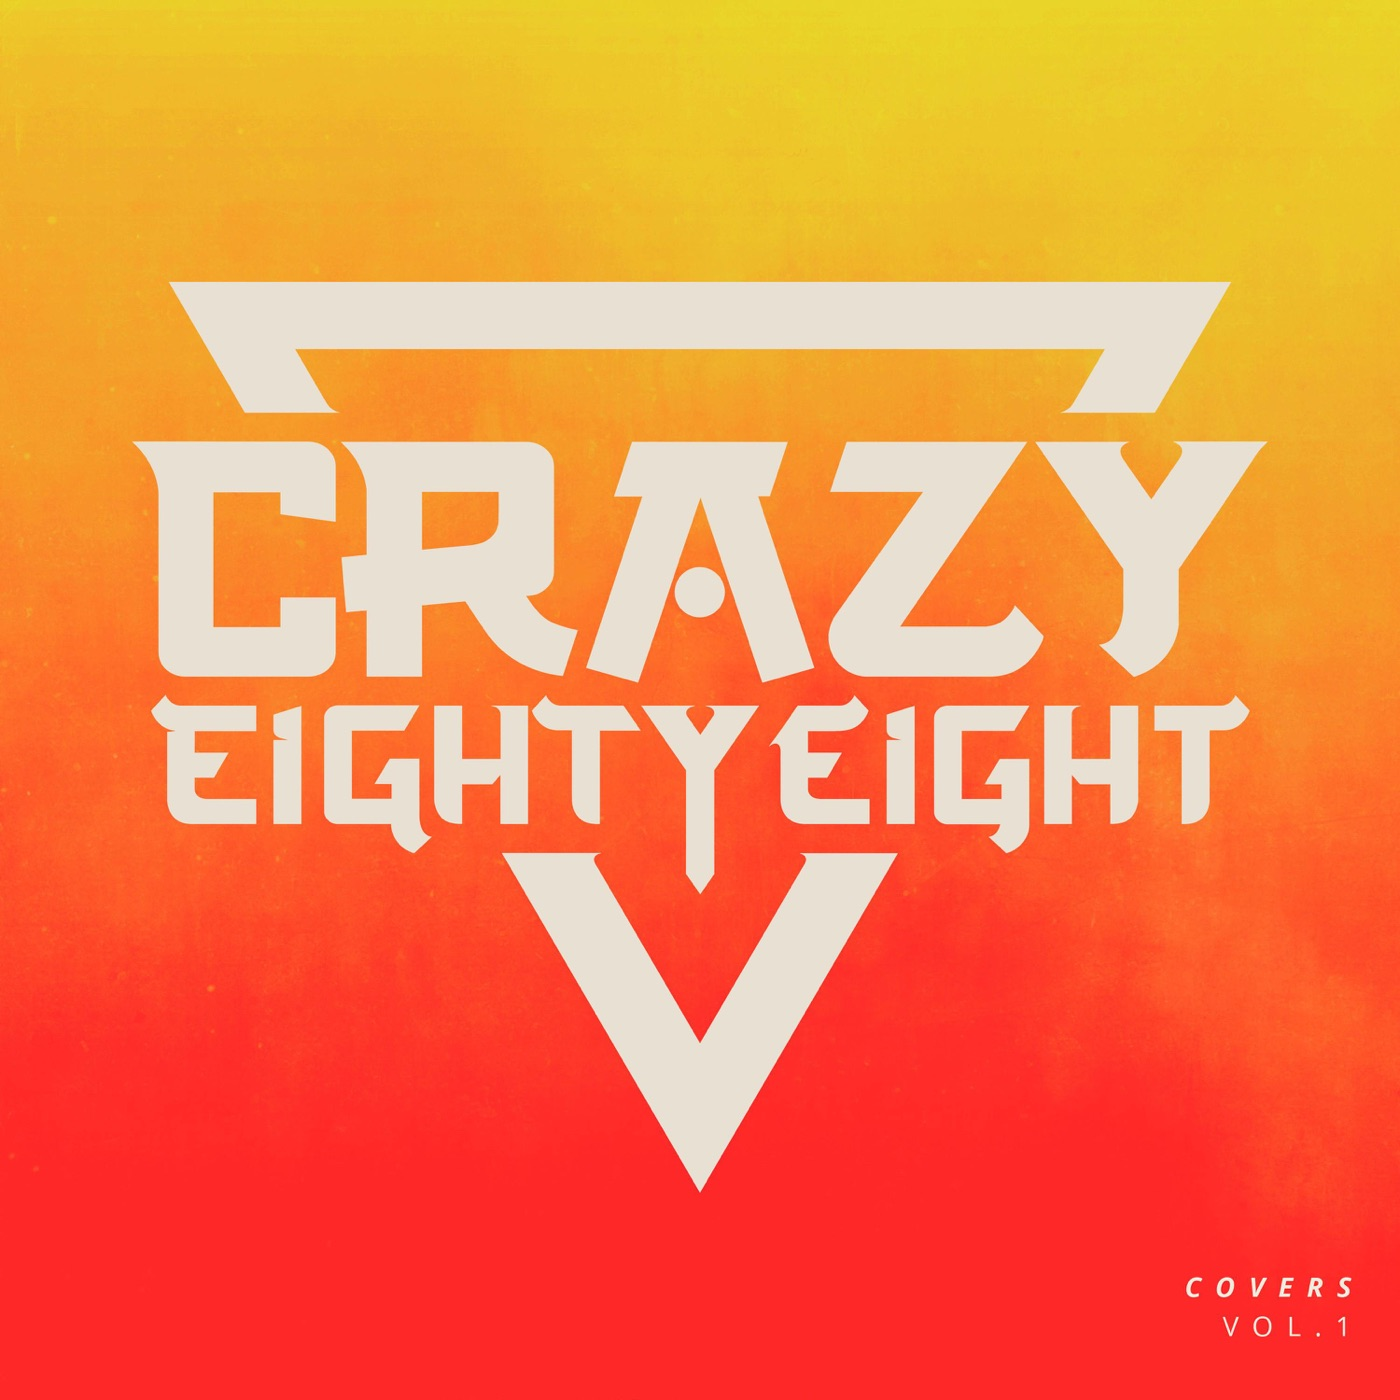 CrazyEightyEight - Covers, Vol. 1 [EP] (2017)